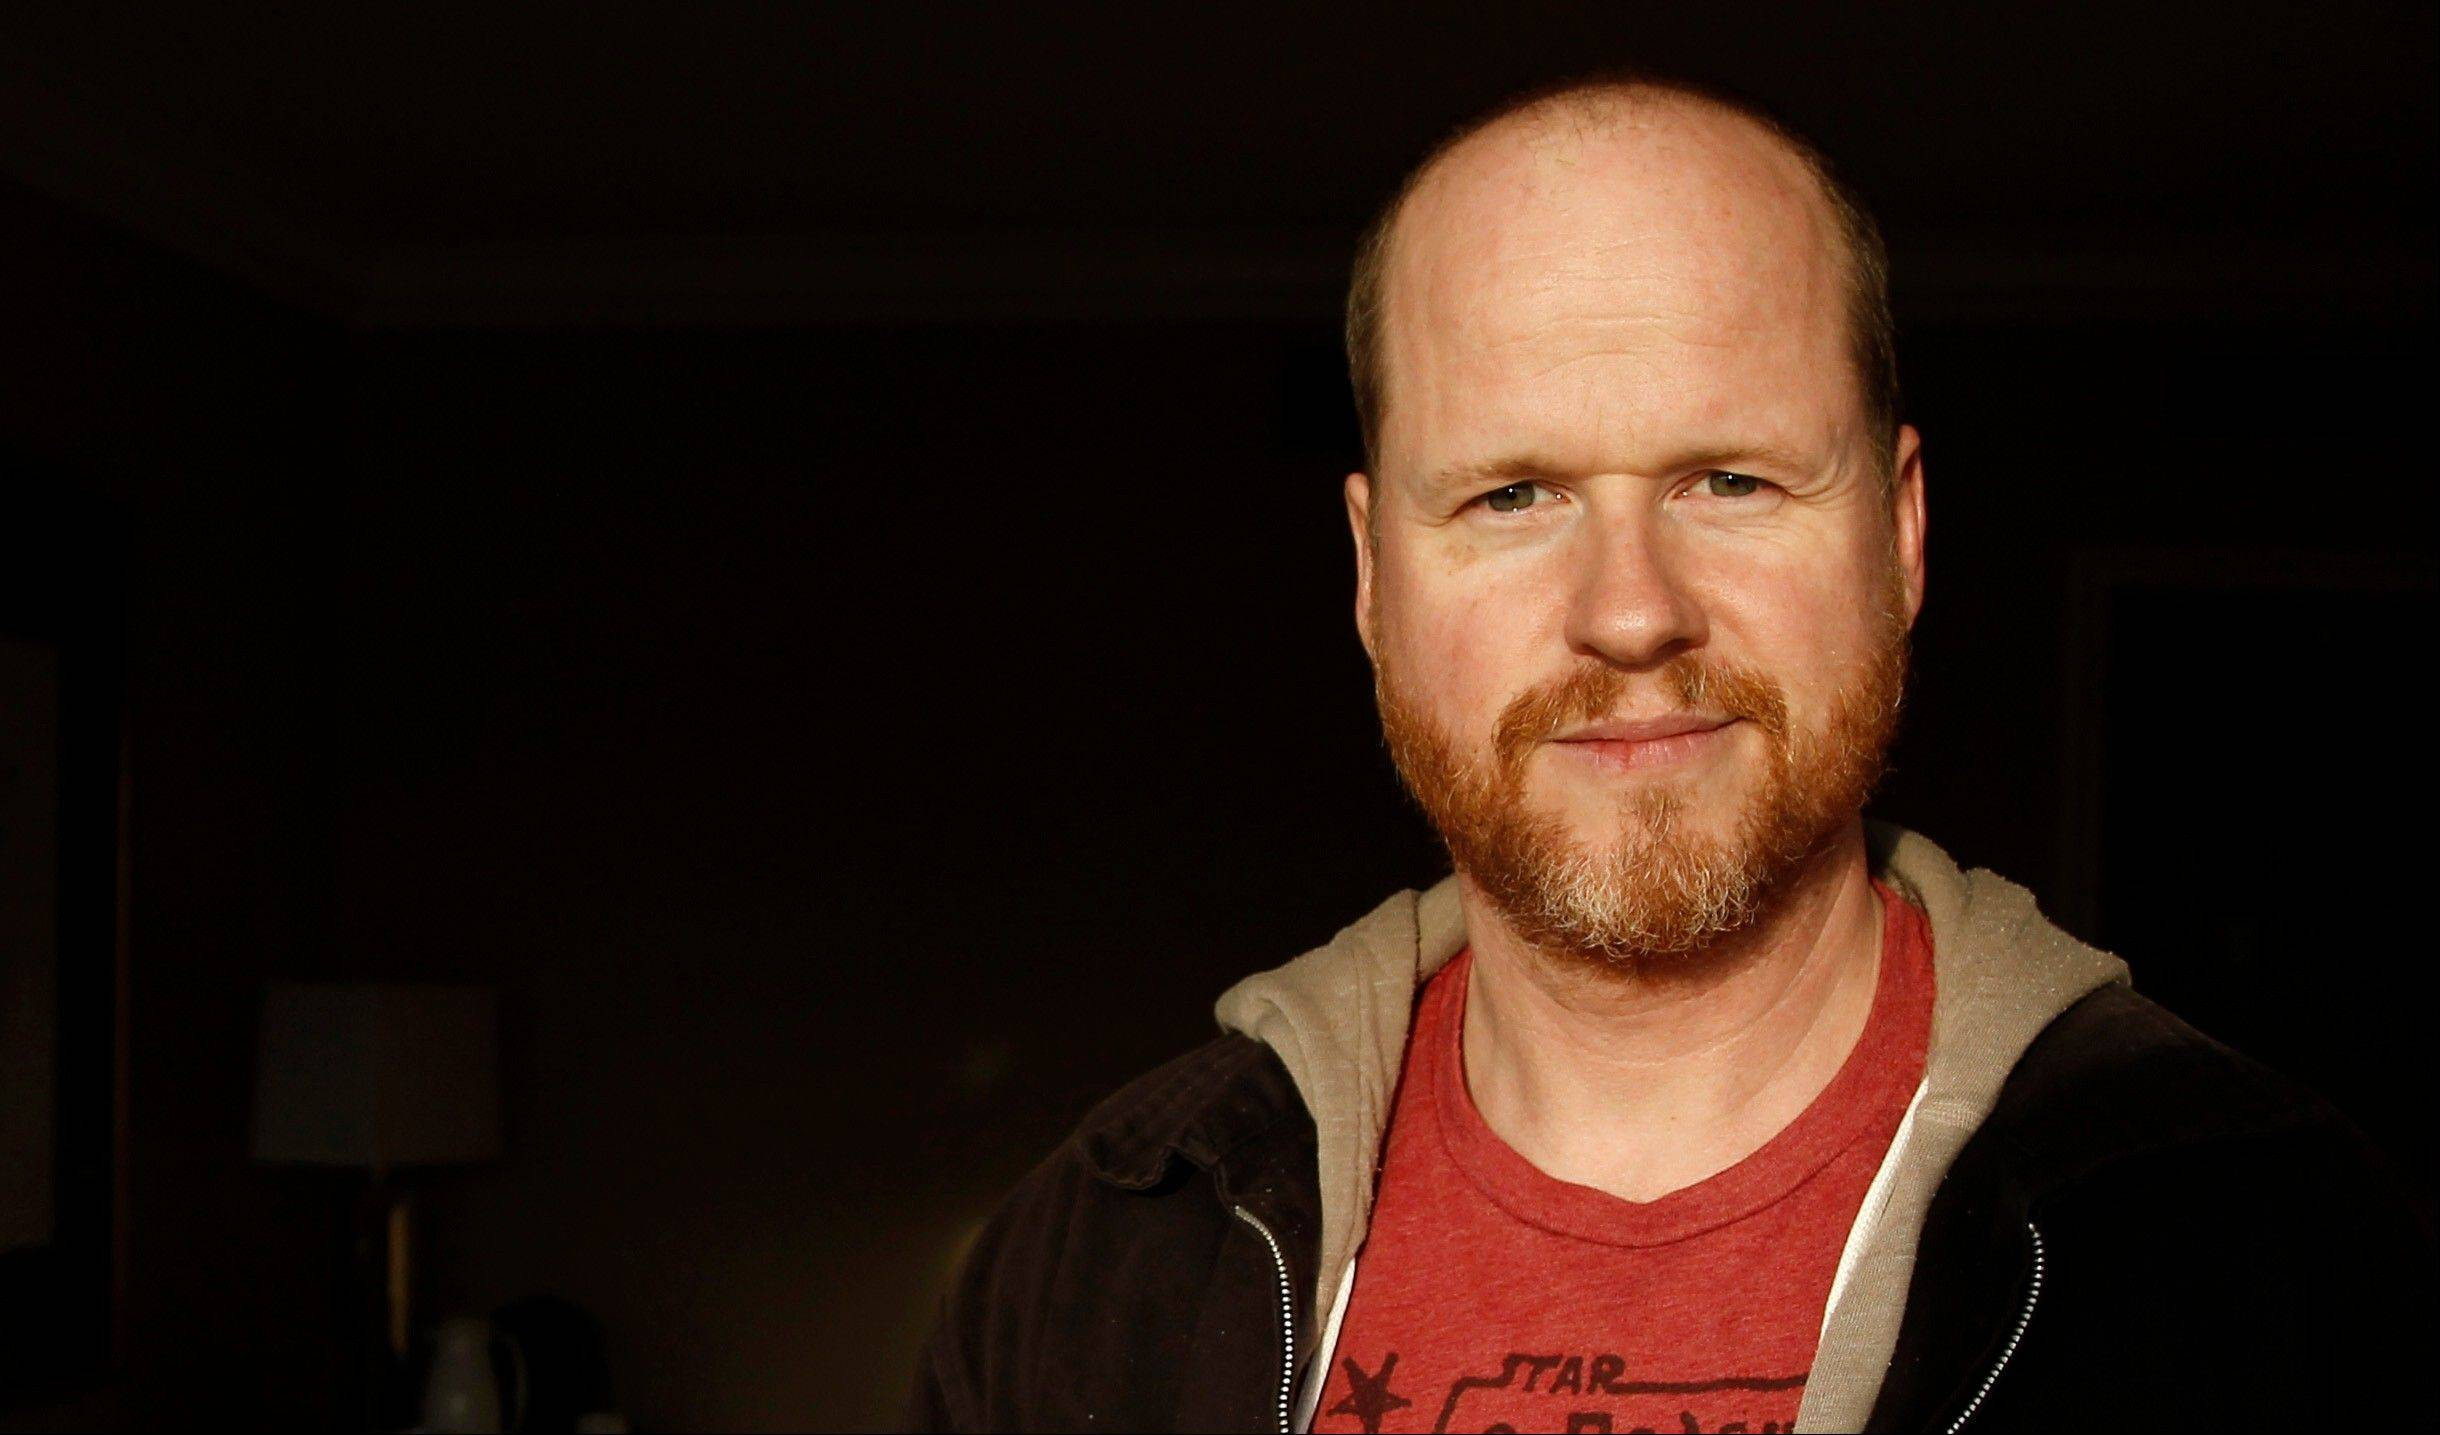 "This May 4, 2012 file photo shows writer and director, Joss Whedon, from the film ""The Avengers,"" posing for a portrait in Beverly Hills, Calif. Whedon said Sunday at Comic-Con International that the storylines of Buffy and his other Vampire Slayer title Angel & Faith will intertwine in interesting ways when Season 10 begins its published run."